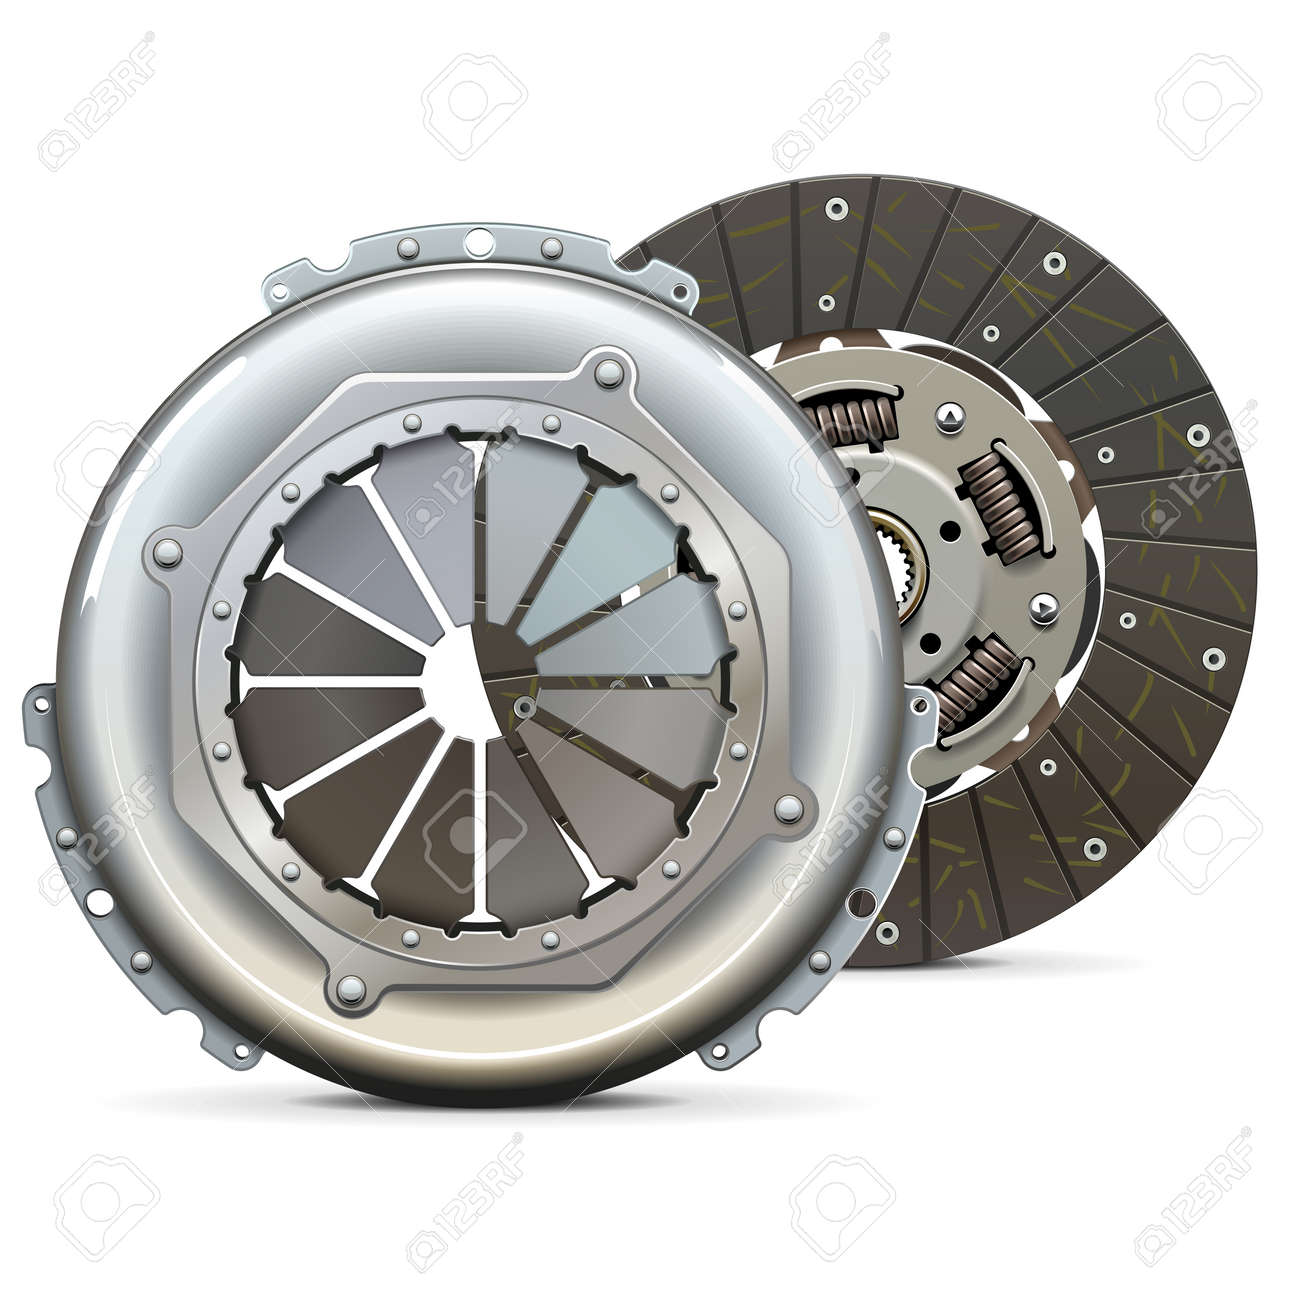 Vector Clutch Cover with Clutch Plate isolated on white background - 164633765